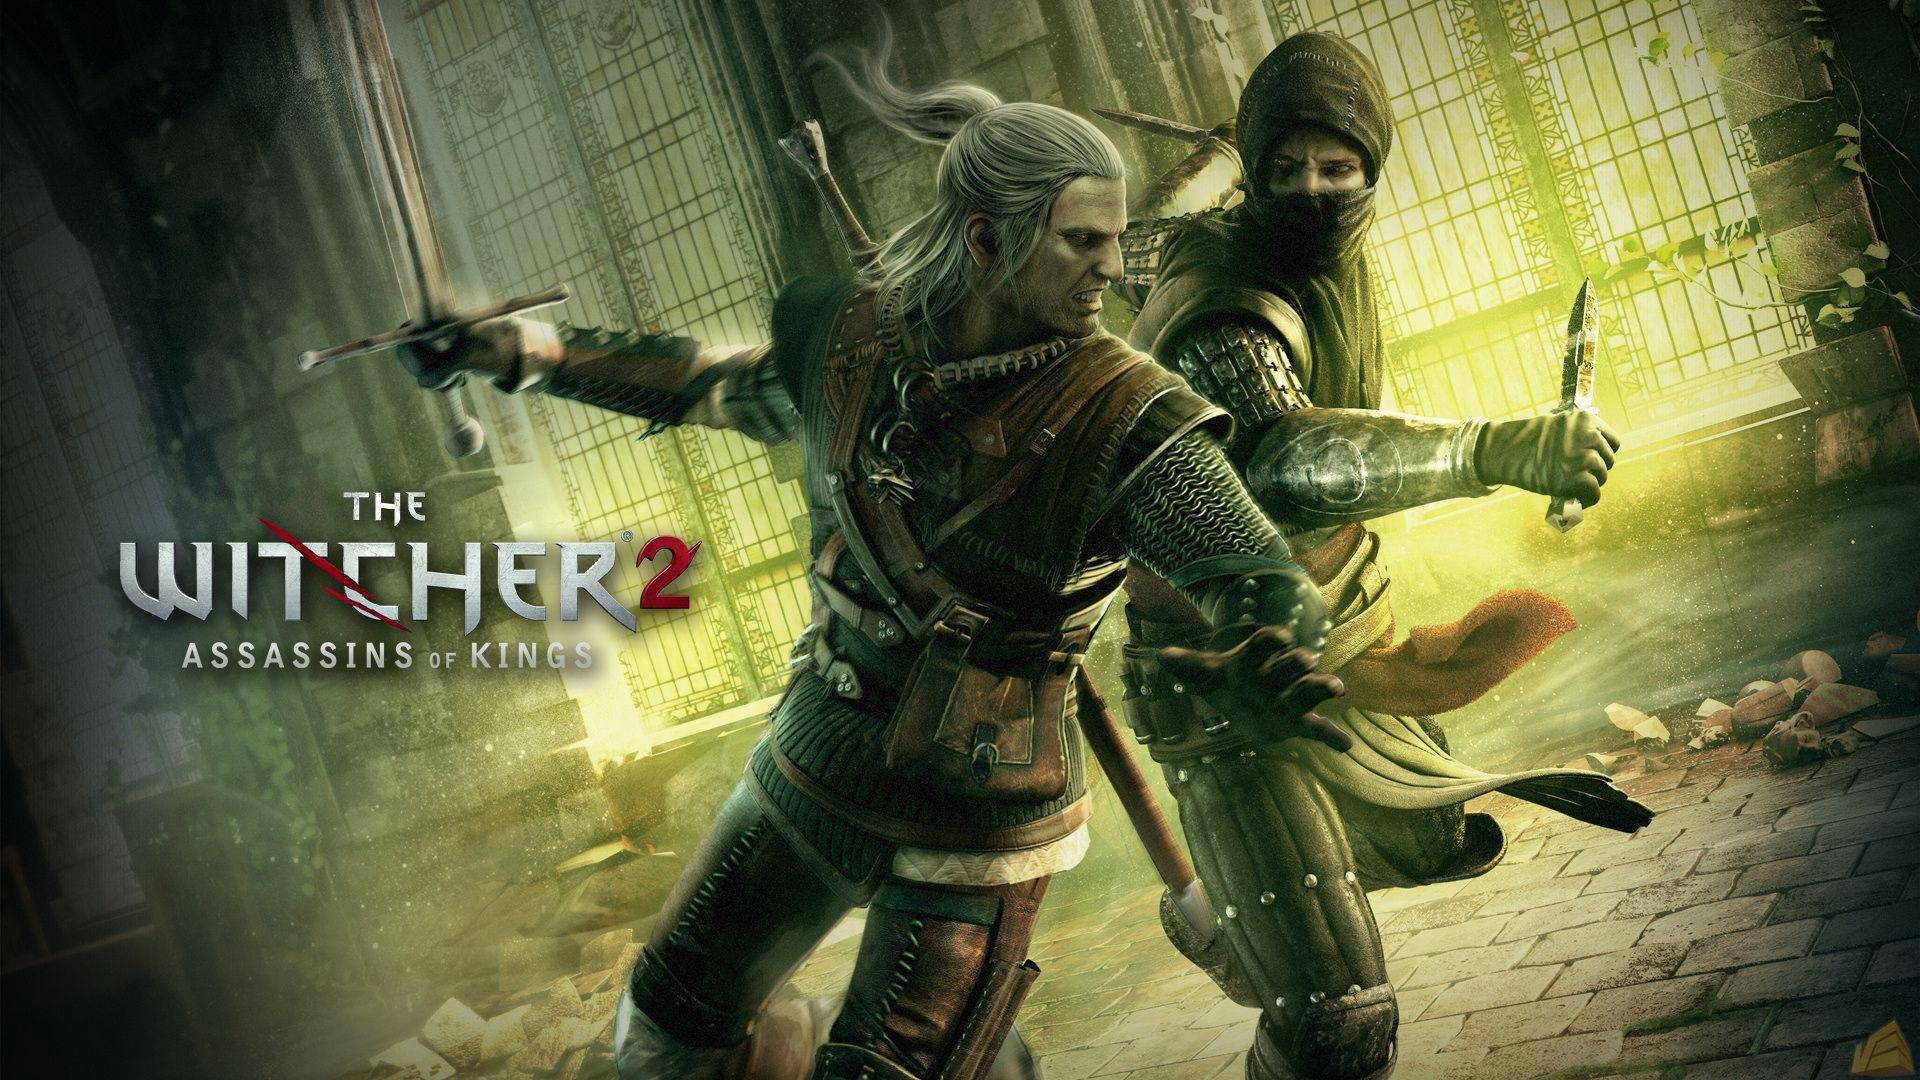 witcher 2 game wallpaper background